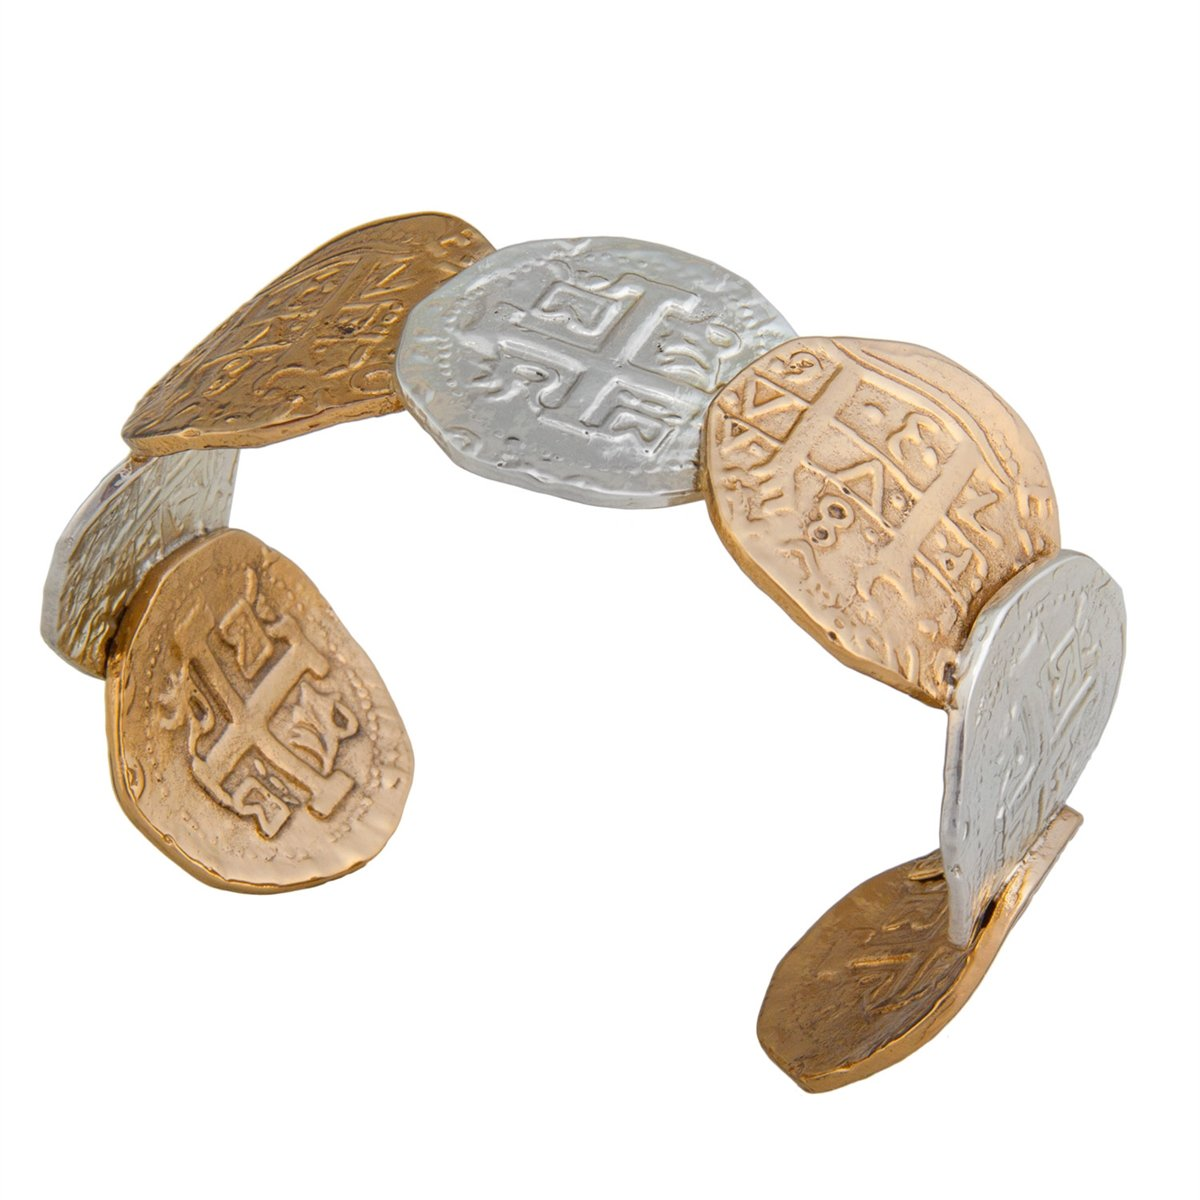 Alchemia and Sterling Silver Replica Treasure Coin Cuff